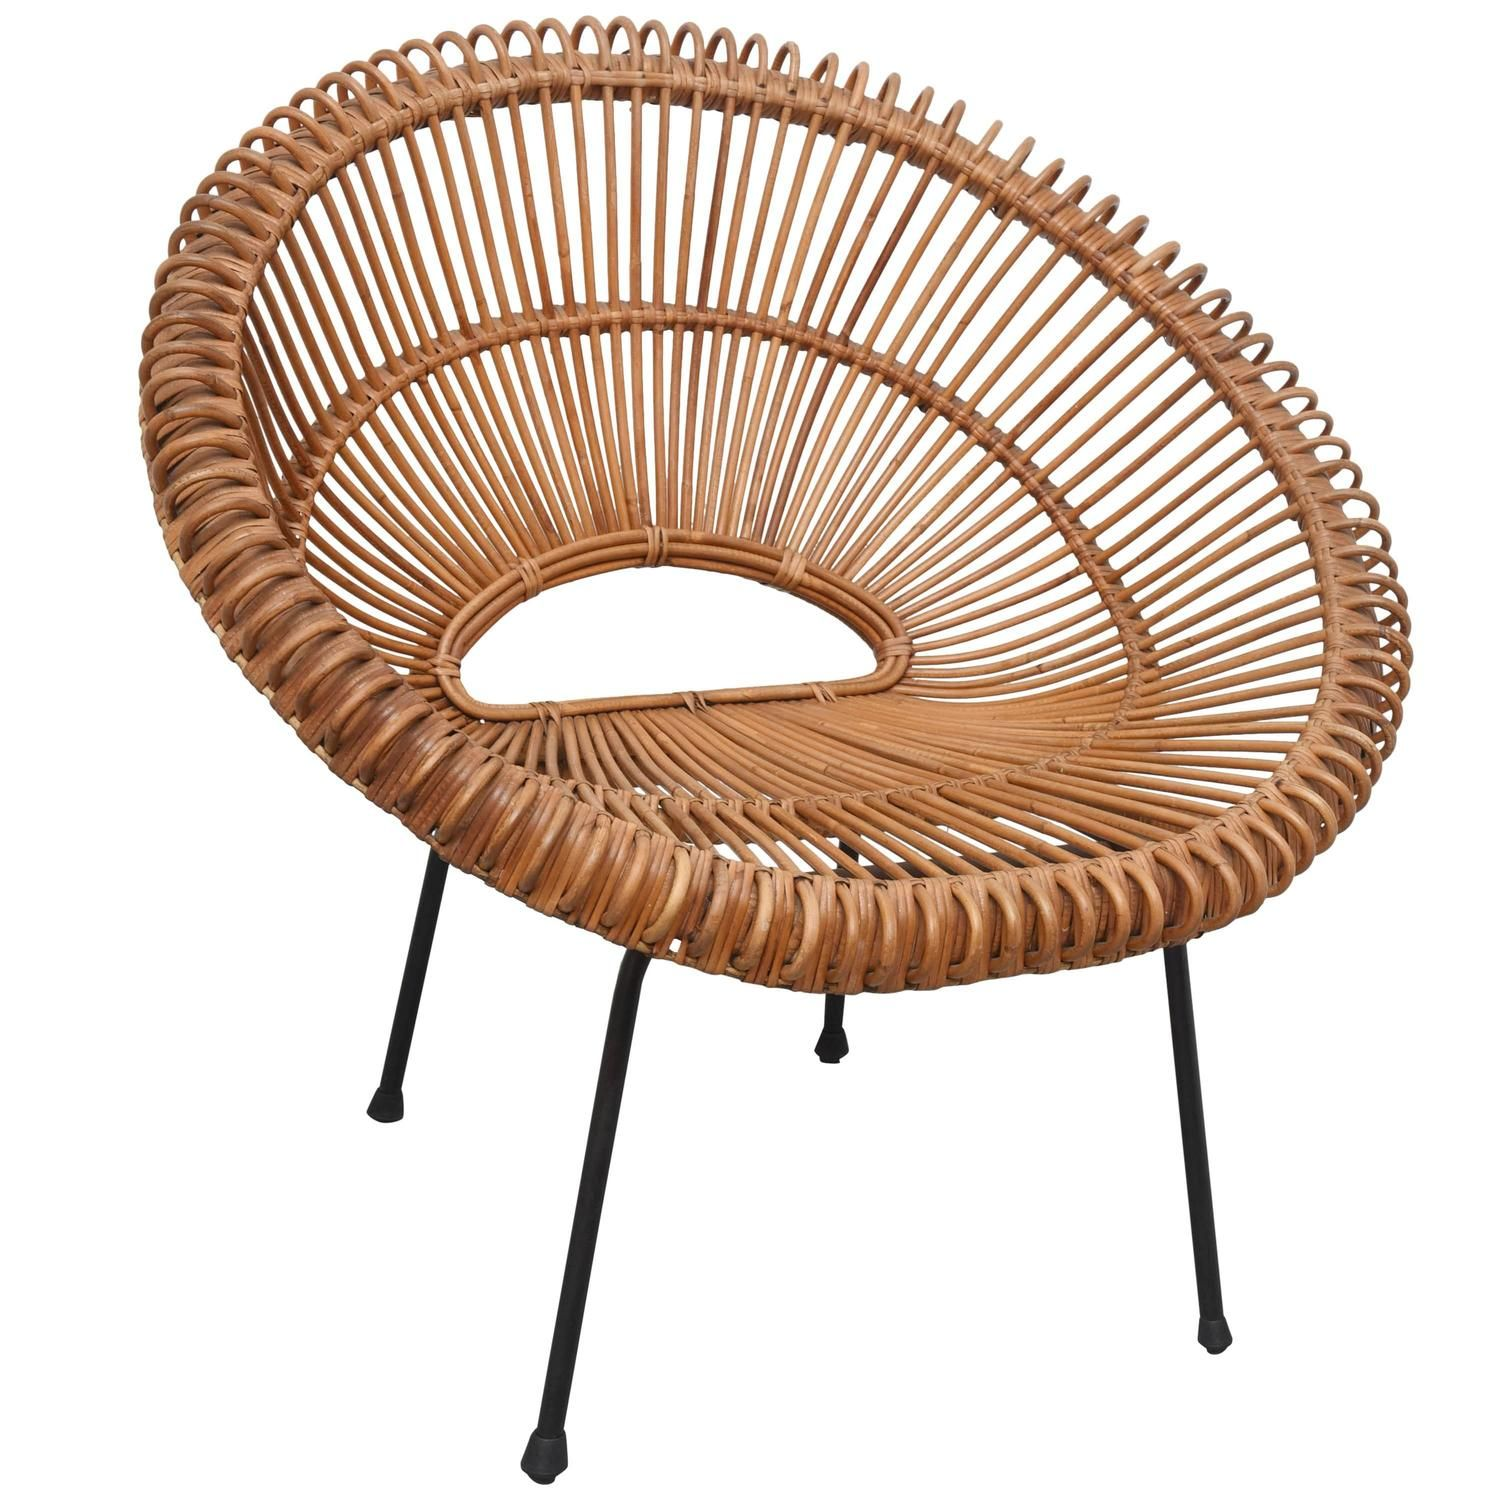 Rattan Chair By Janine Abraham / Dirk Jan Rol, France, 1960 | From A Design